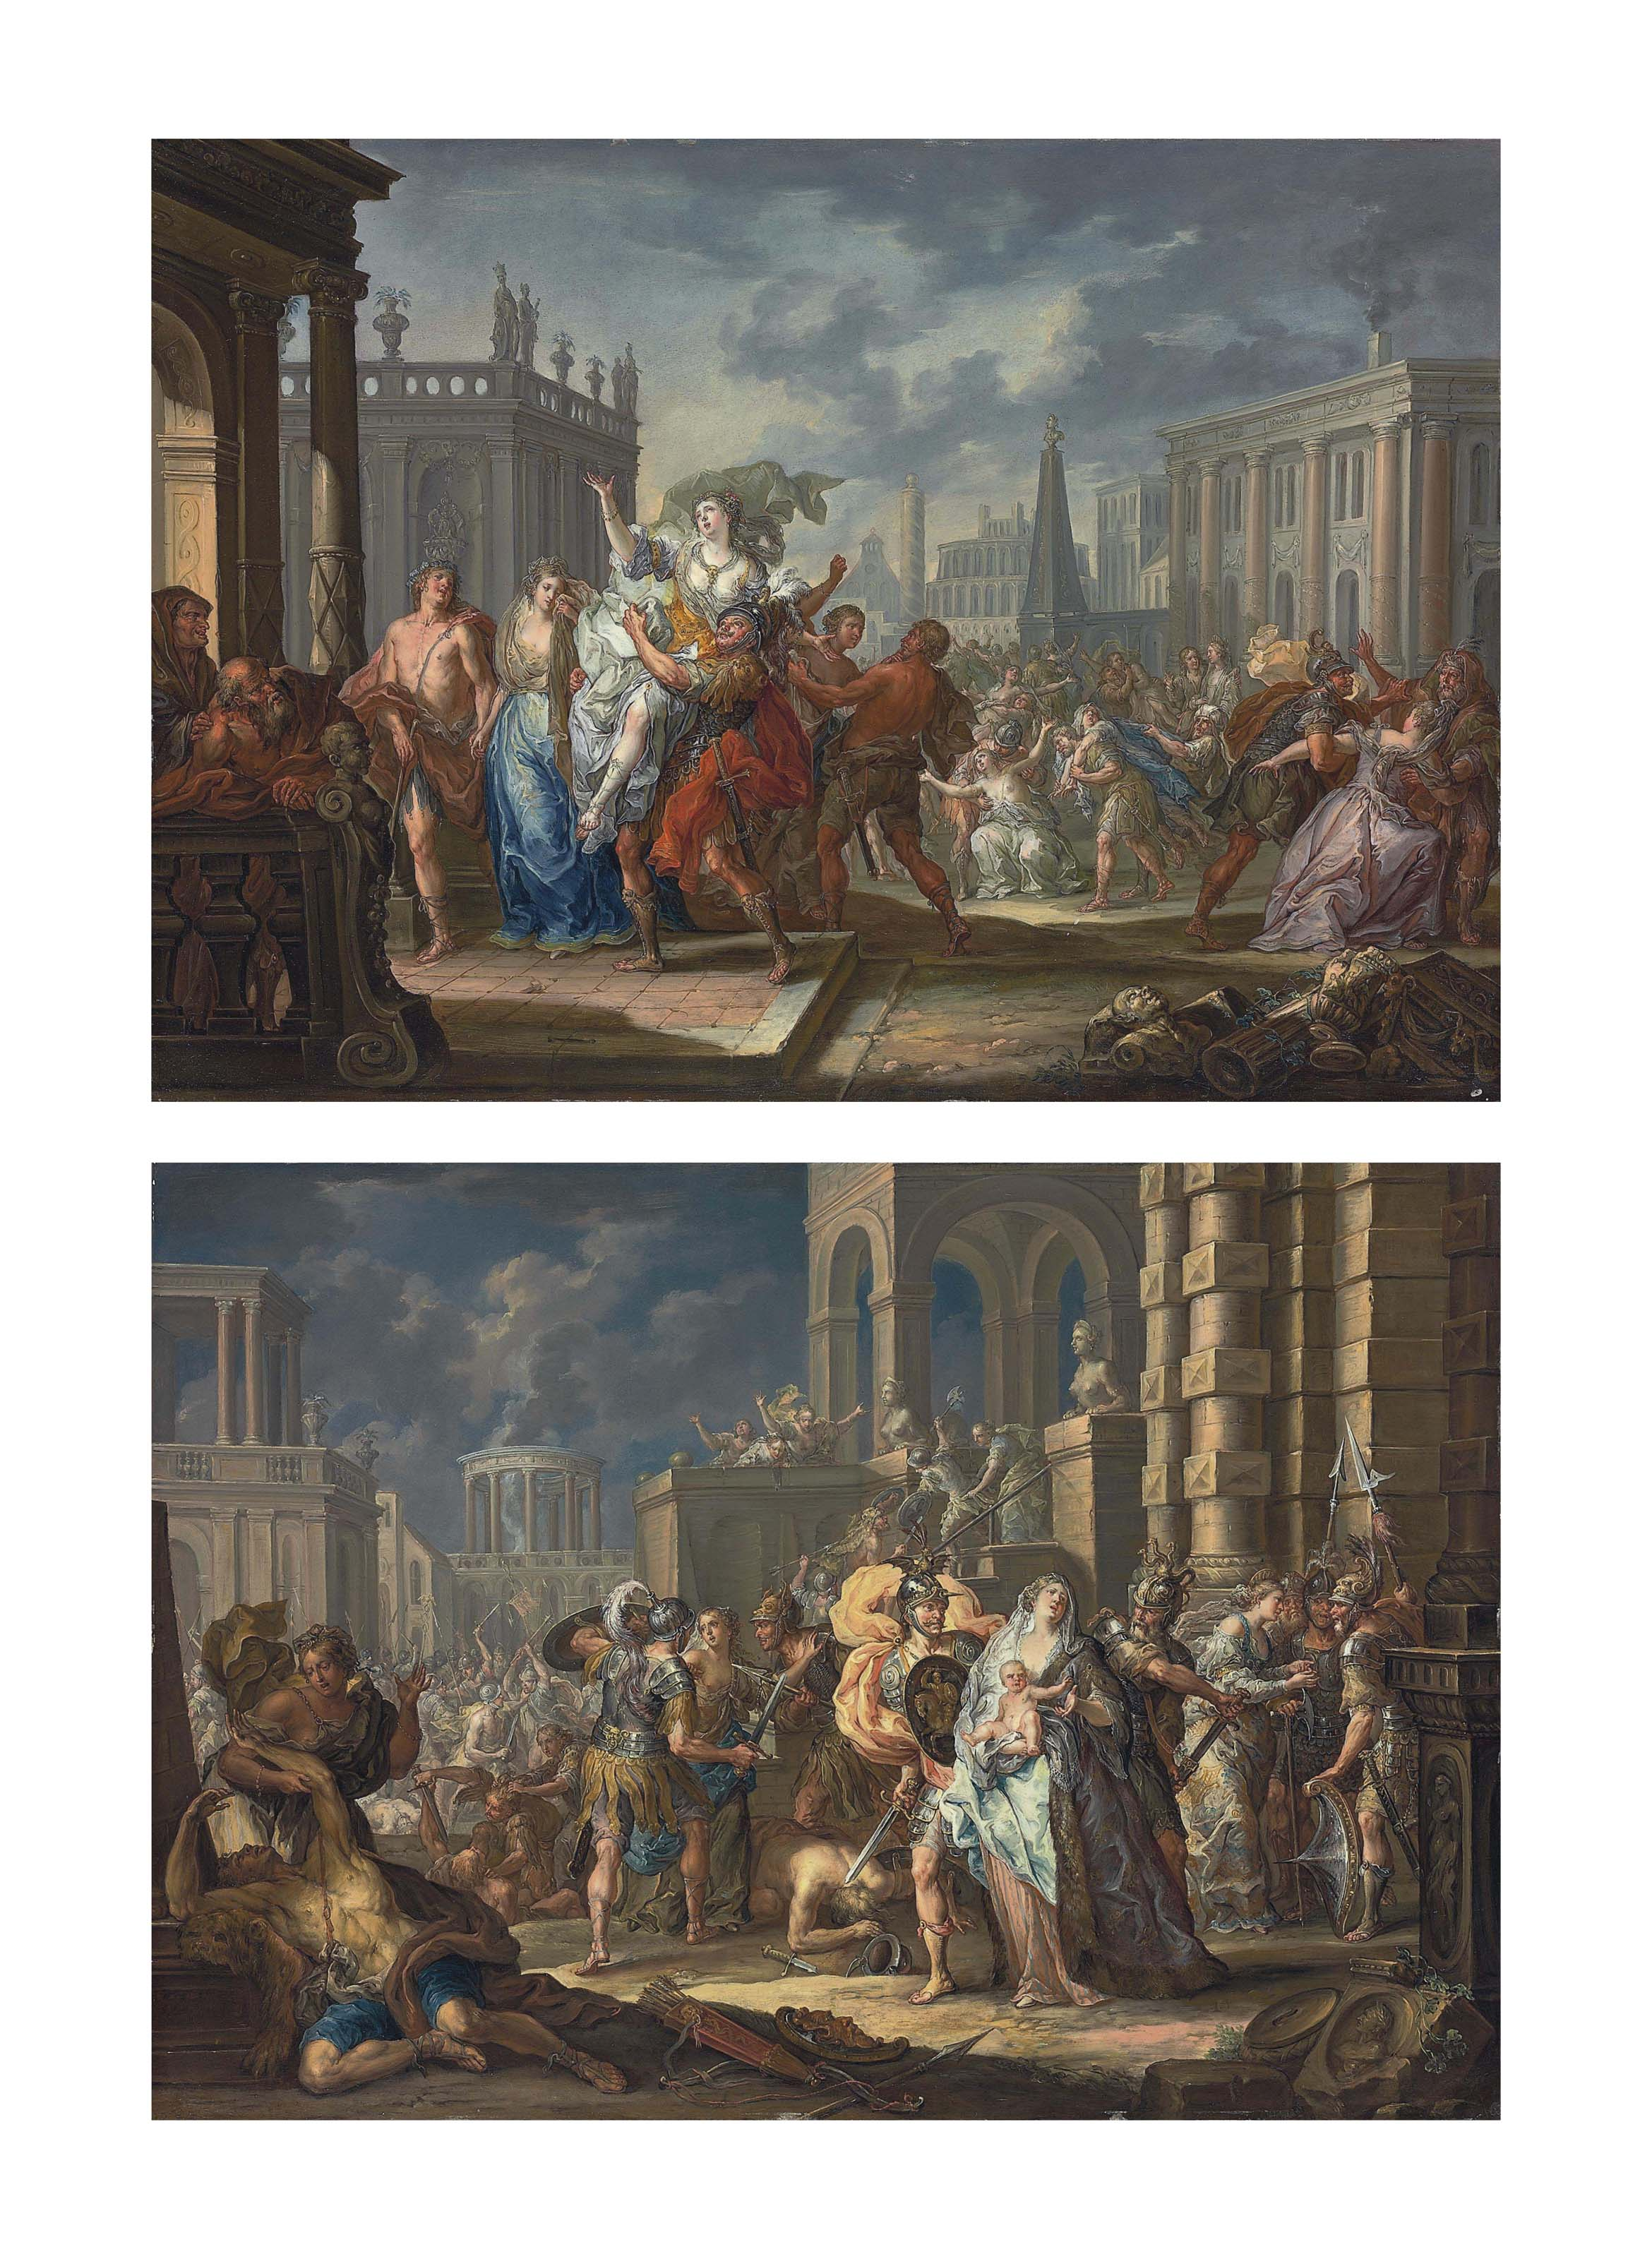 The Rape of the Sabine Women; and The Intervention of the Sabine Women